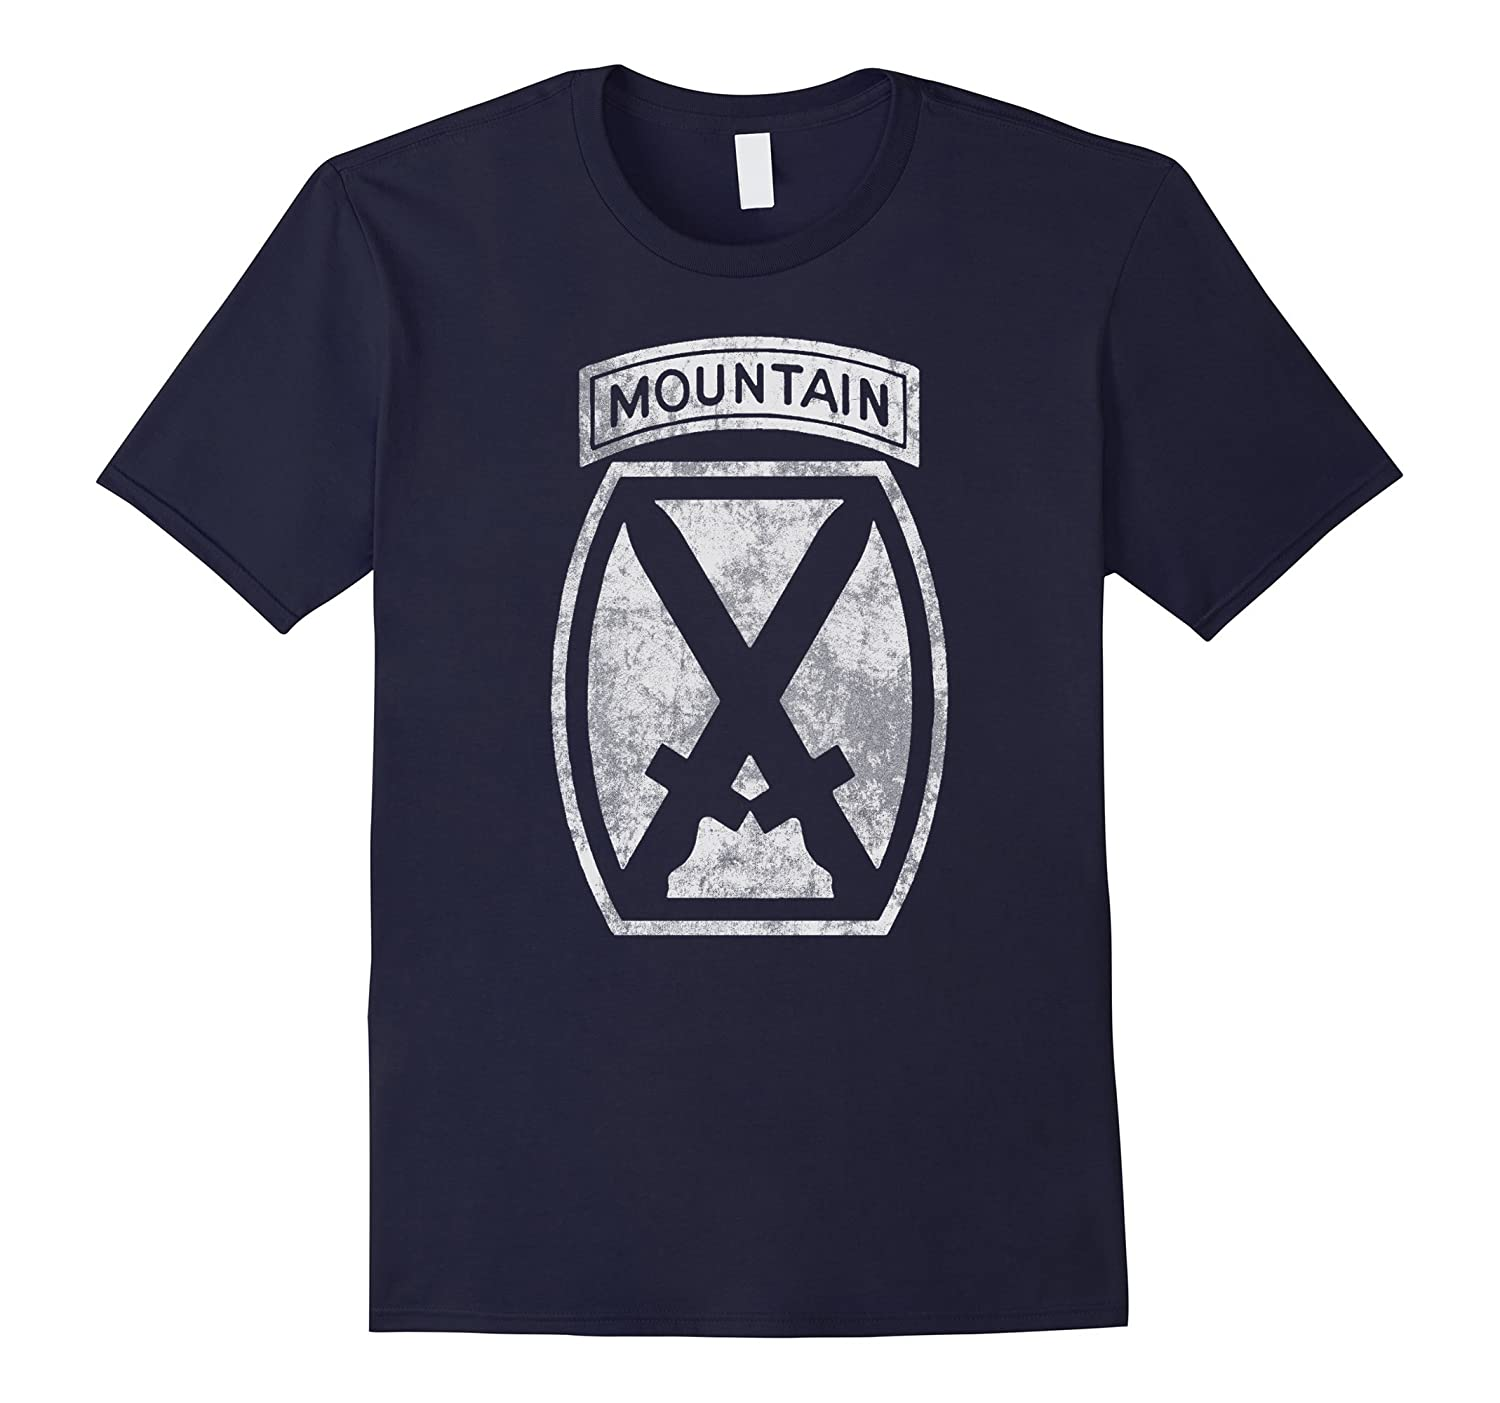 10th Mountain Division Veteran T Shirt - Men Women Kid-FL